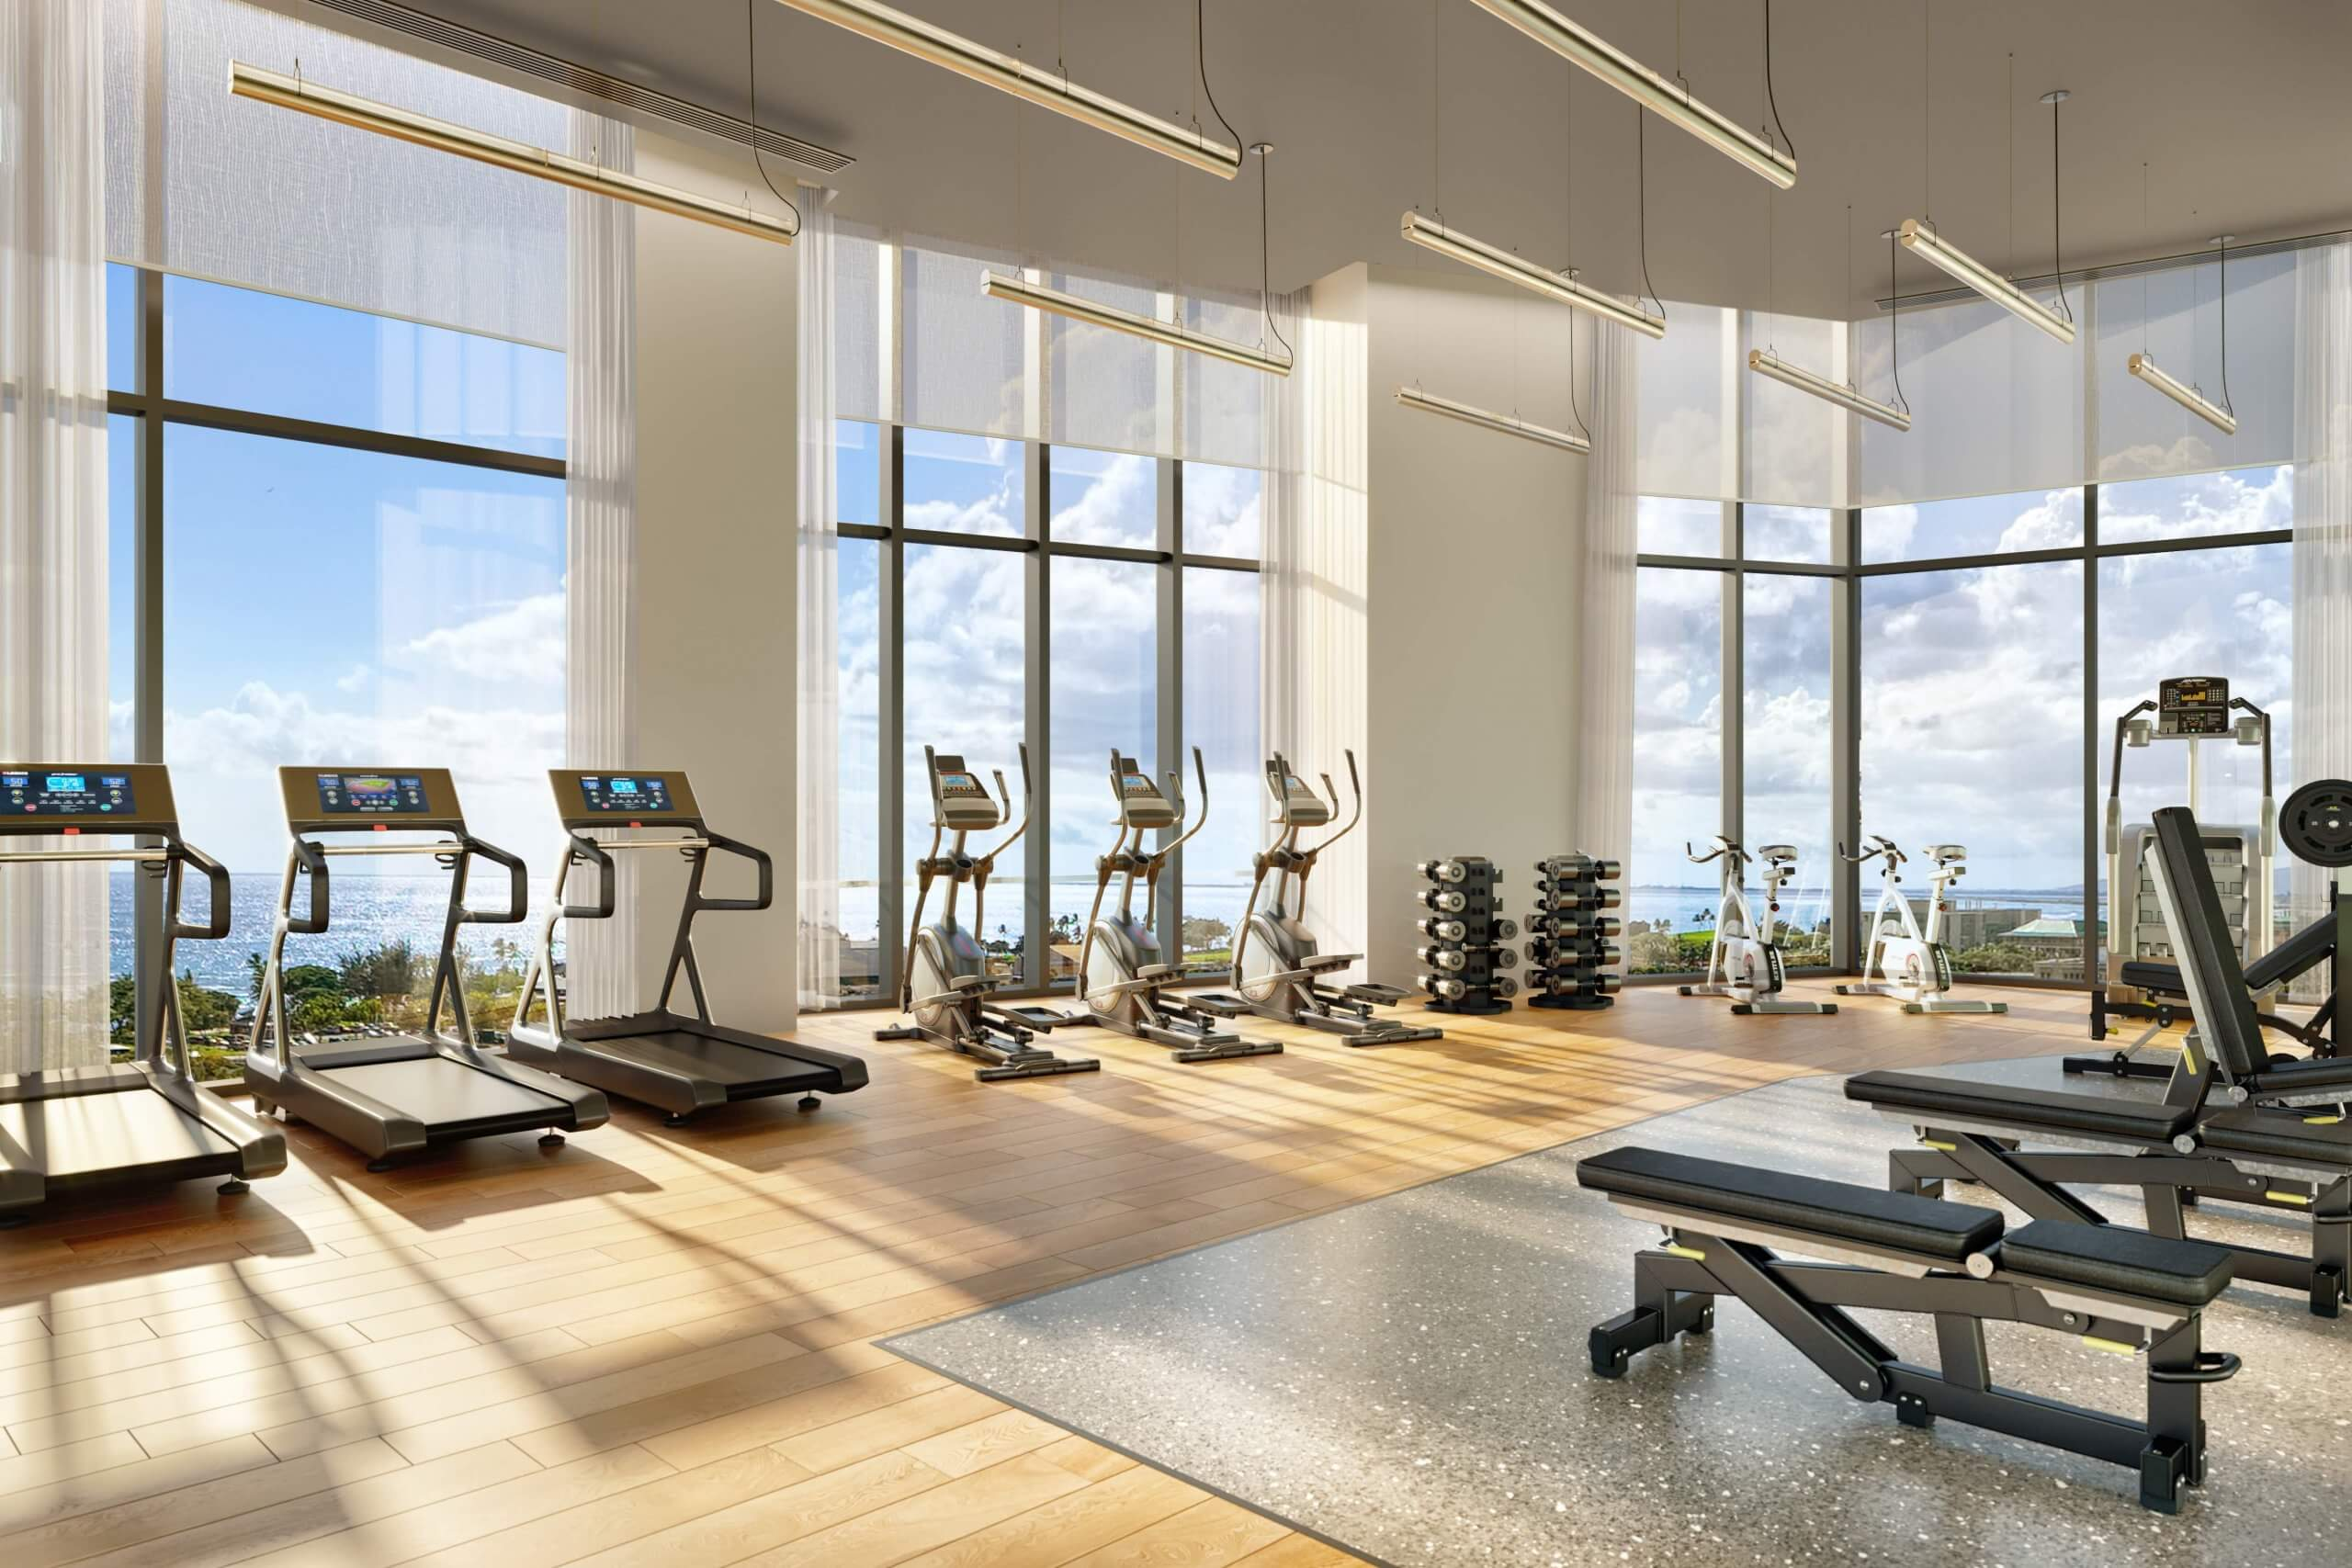 TW004-8-Fitness-Room-C05-01